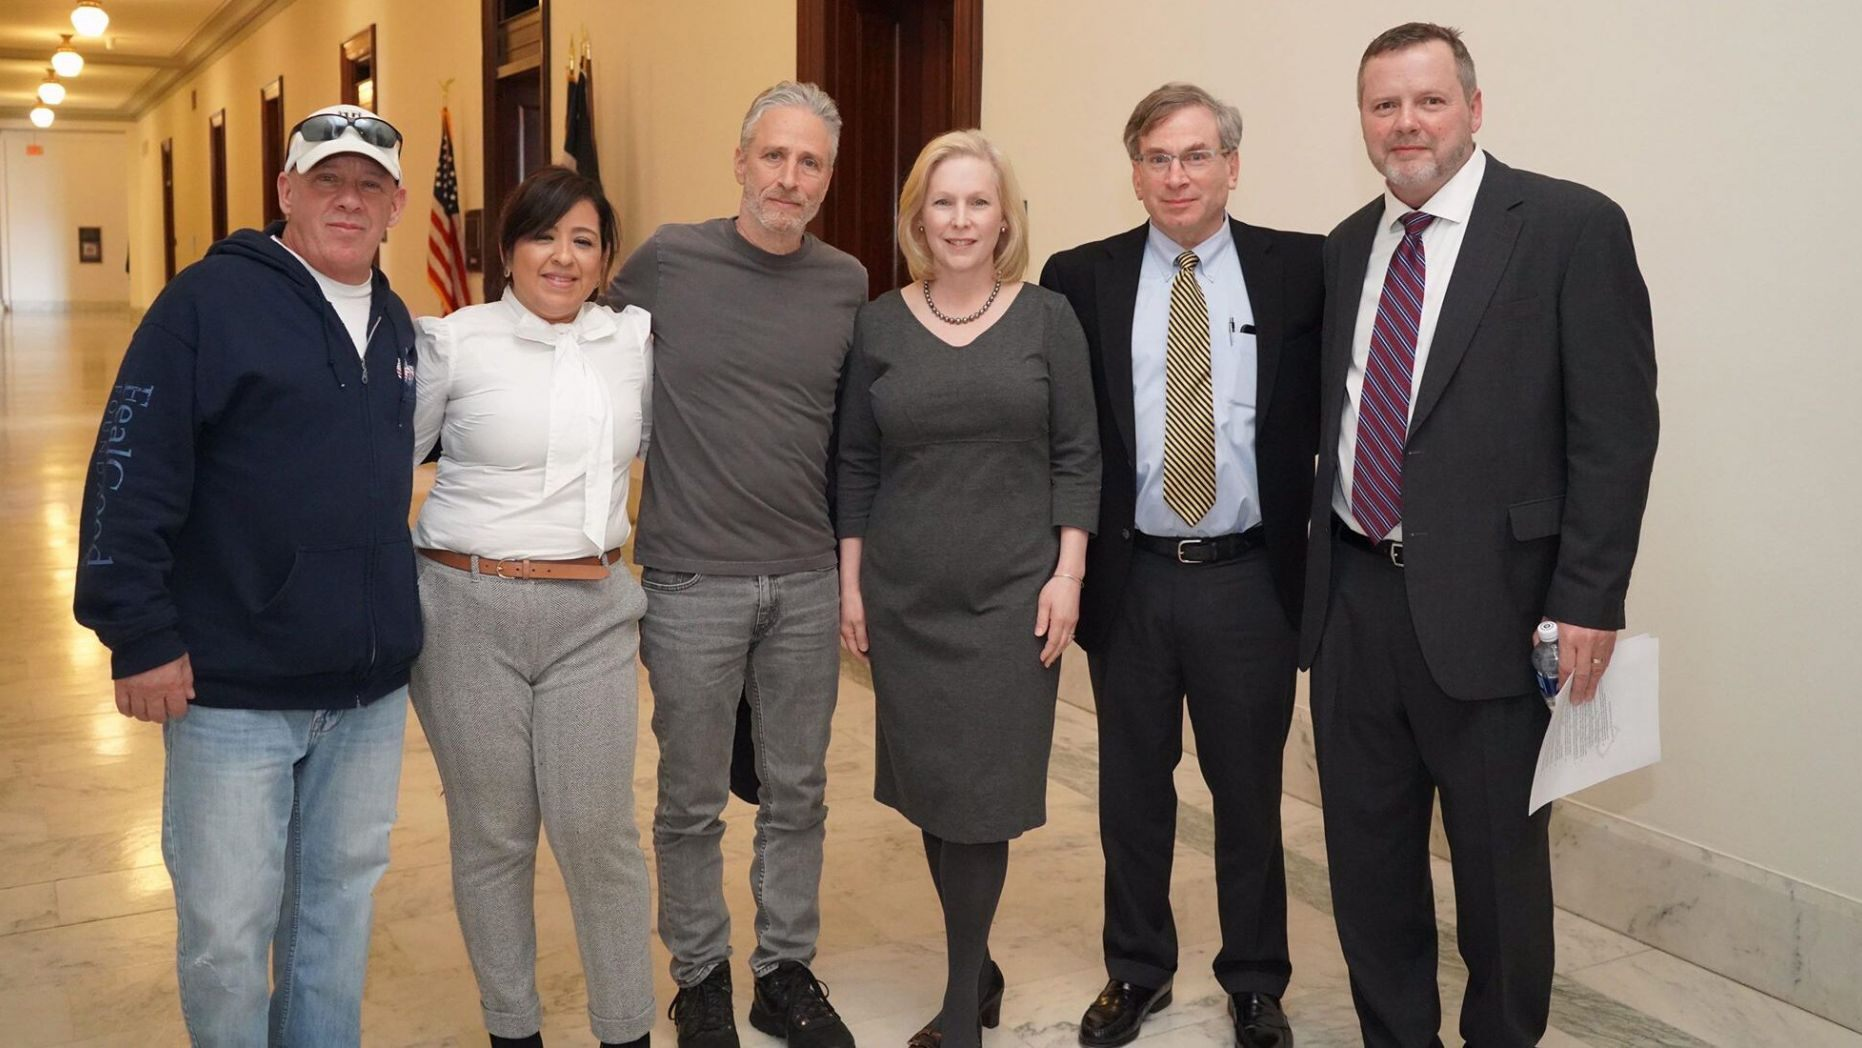 Jon Stewart (center) recently met with Senator Kirsten Gillbrand (D-NY, center) along with advocates John Feal (left) and Rosie Torres (left), founder of Burn Pits 360.